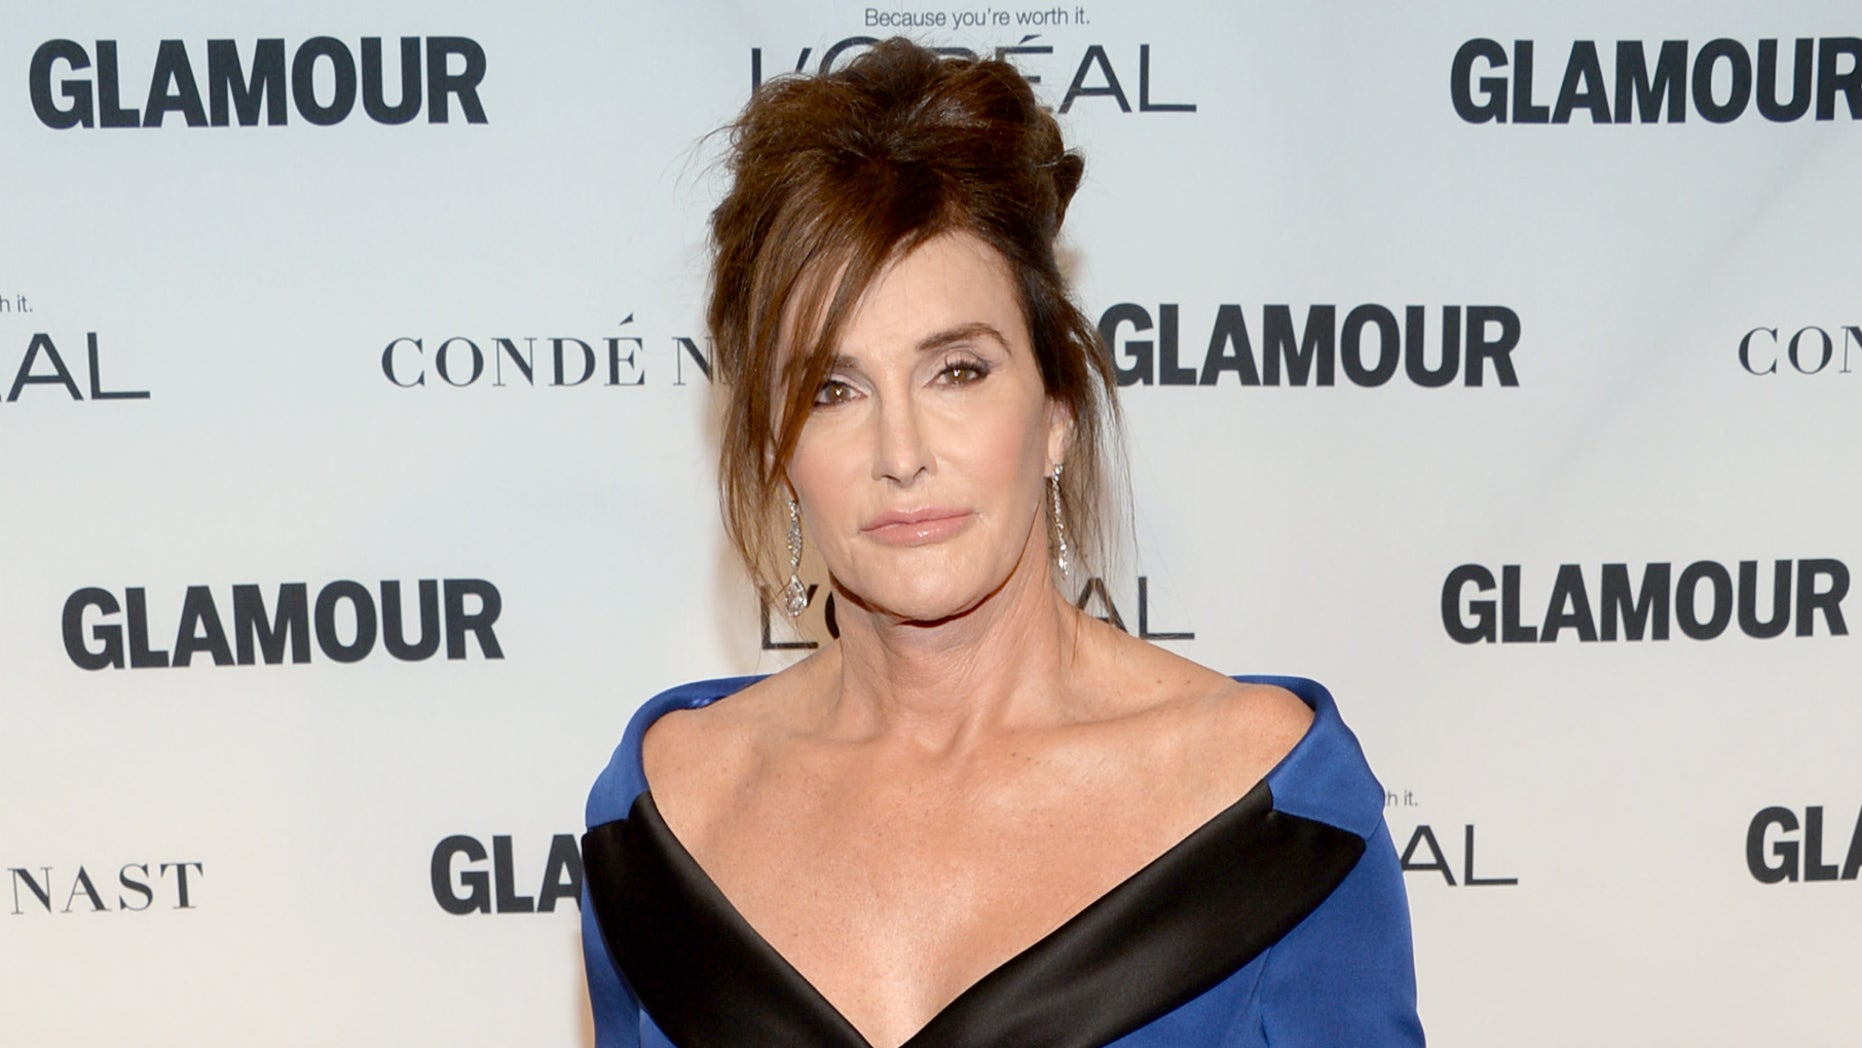 Nov. 9, 2015. Caitlyn Jenner attends the 25th annual Glamour Women of the Year Awards at Carnegie Hall in New York.